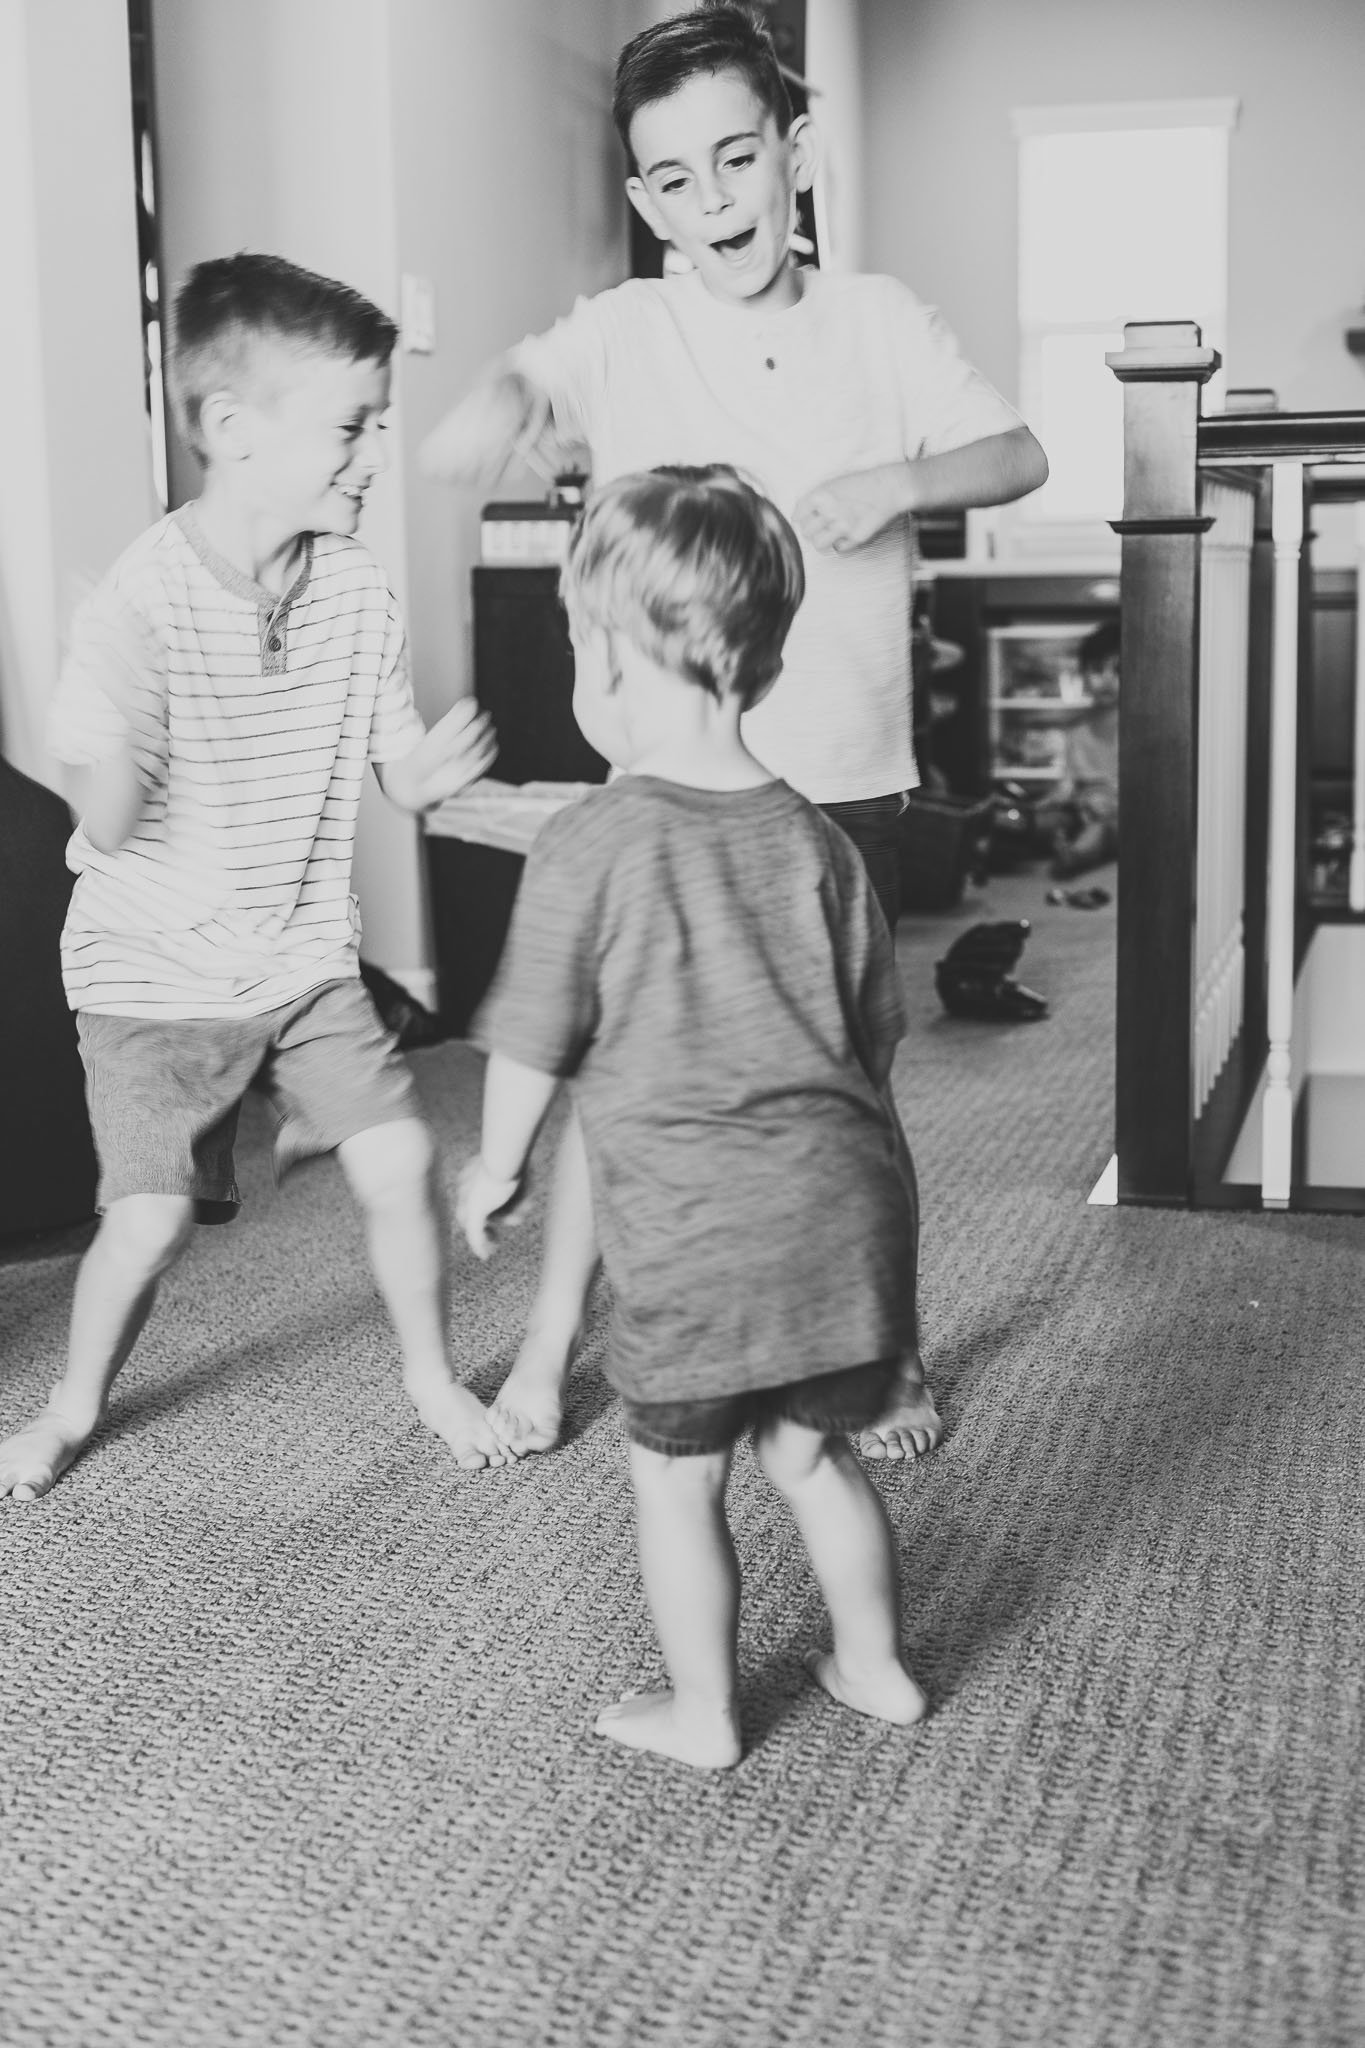 Oahu, Hawaii Lifestyle Photographer - Lifestyle Photography - Brooke Flanagan Photography - Brothers dancing in Black and White